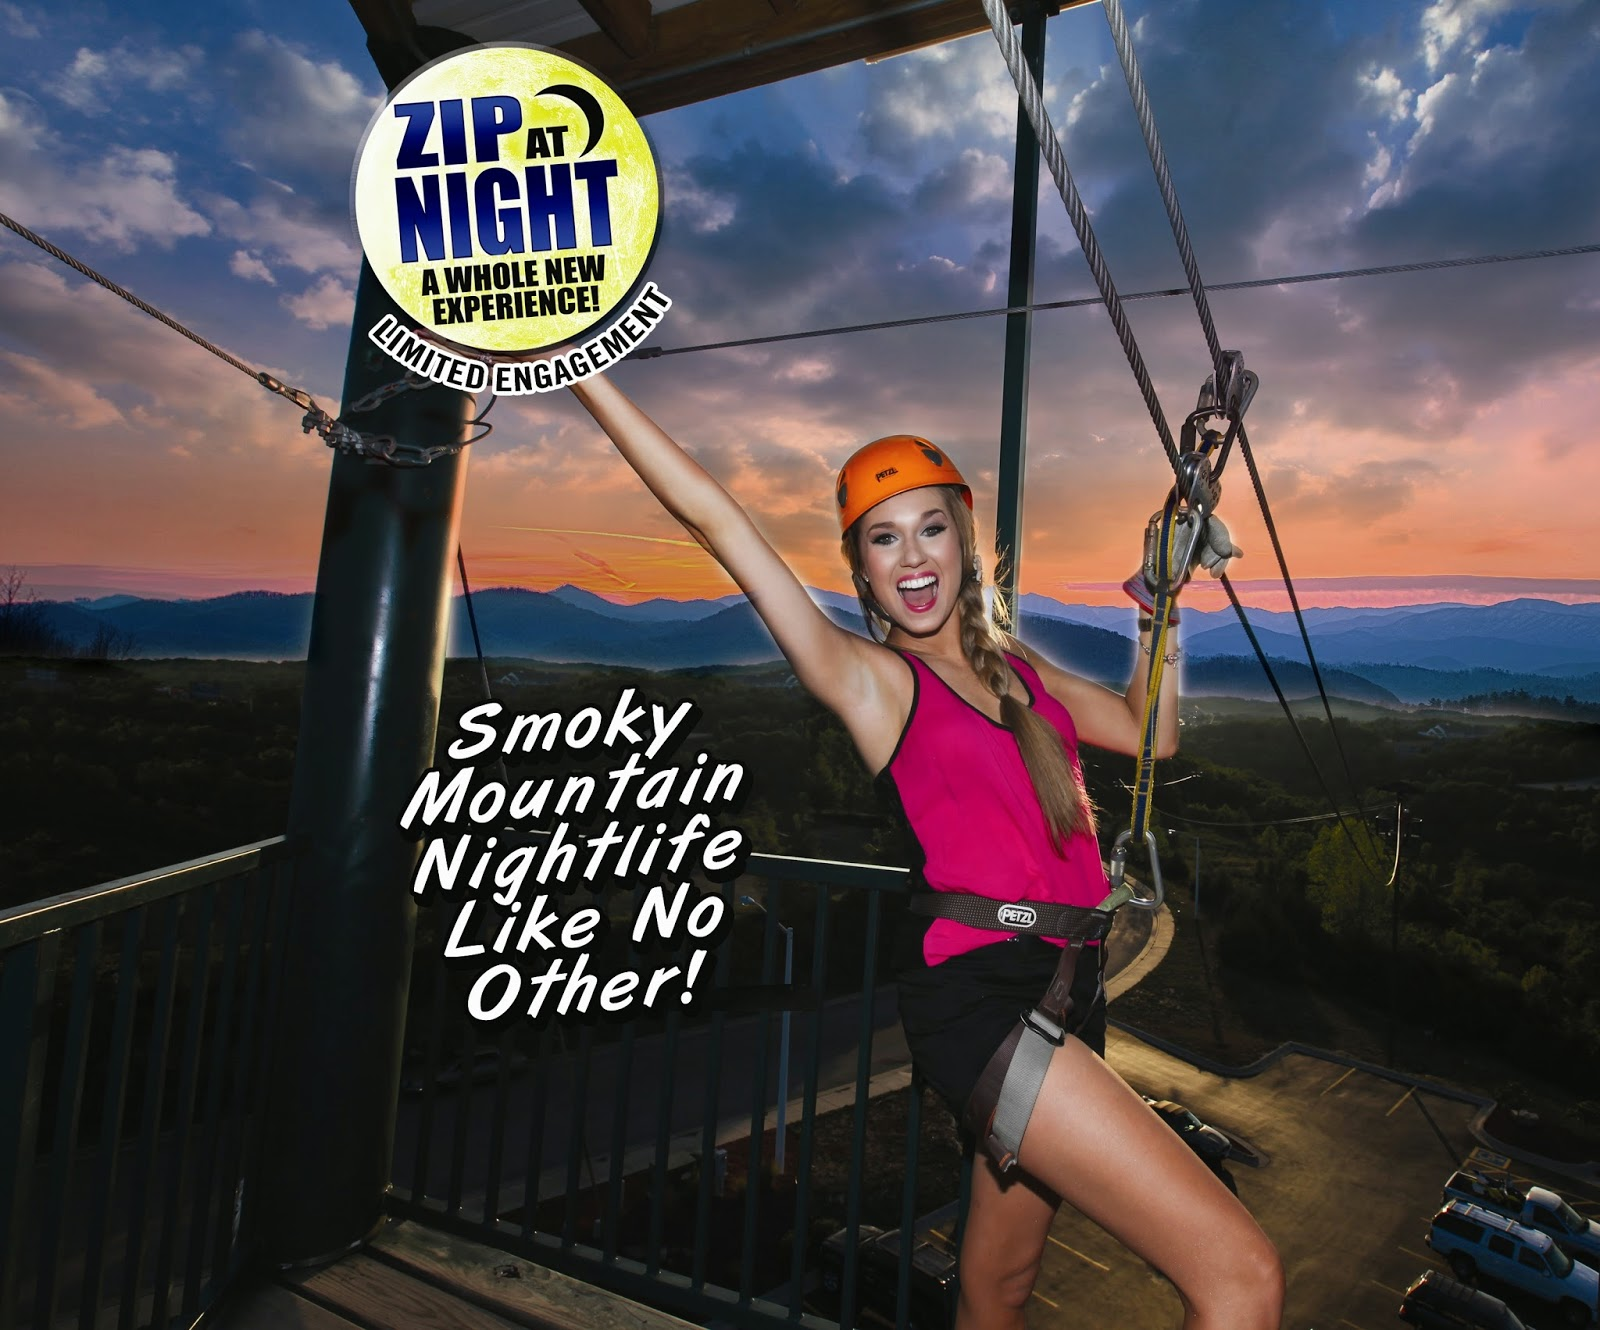 Night Zipping near Pigeon Forge